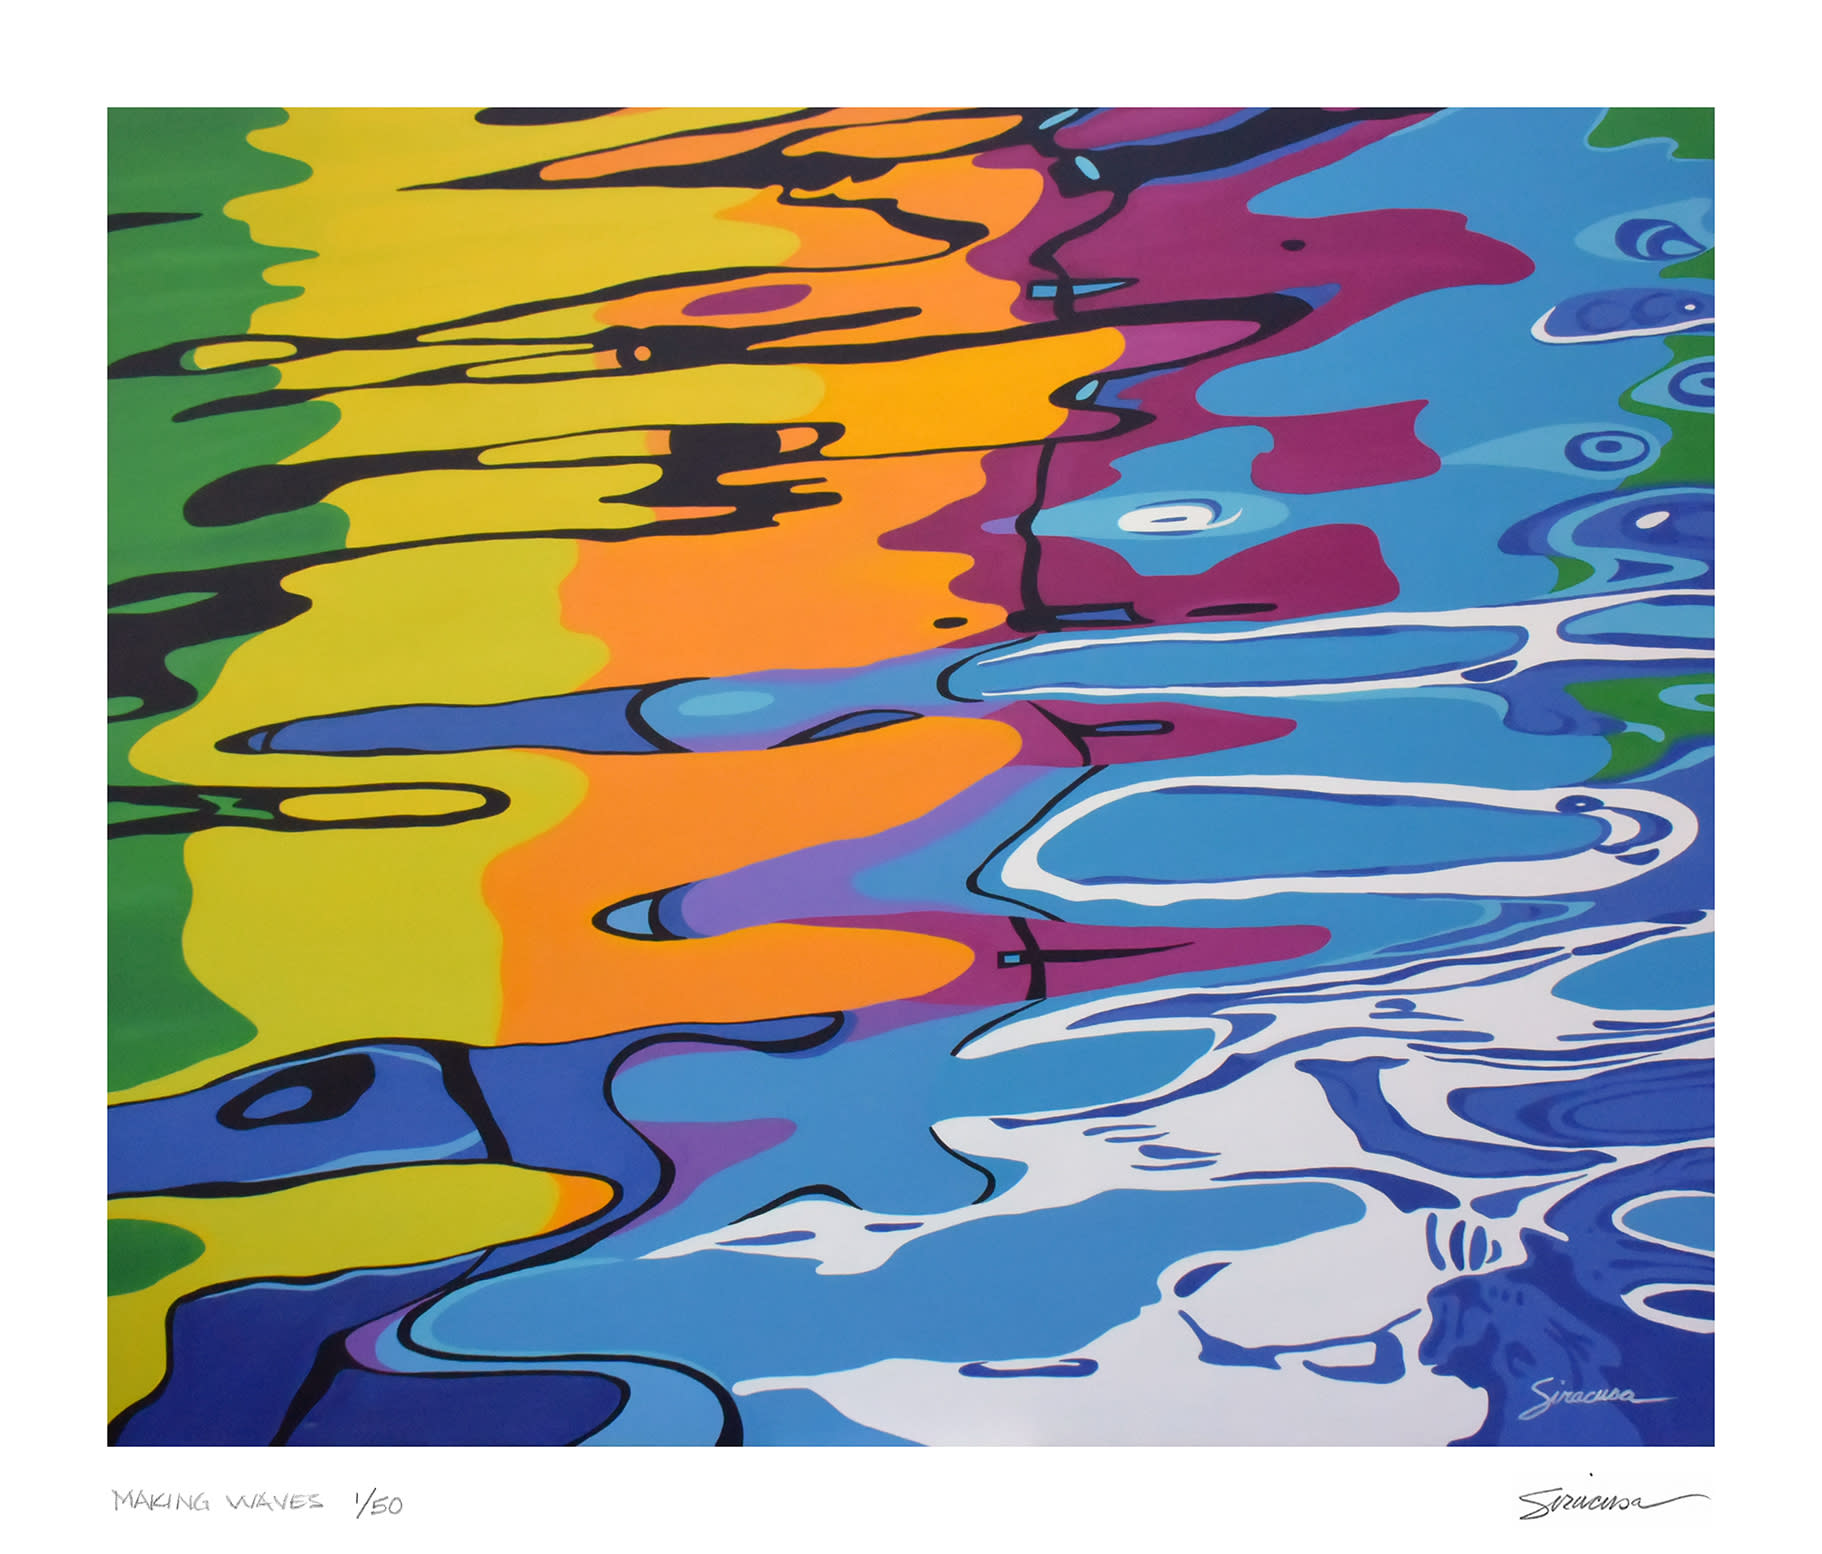 Making waves limited edition print ungrnv